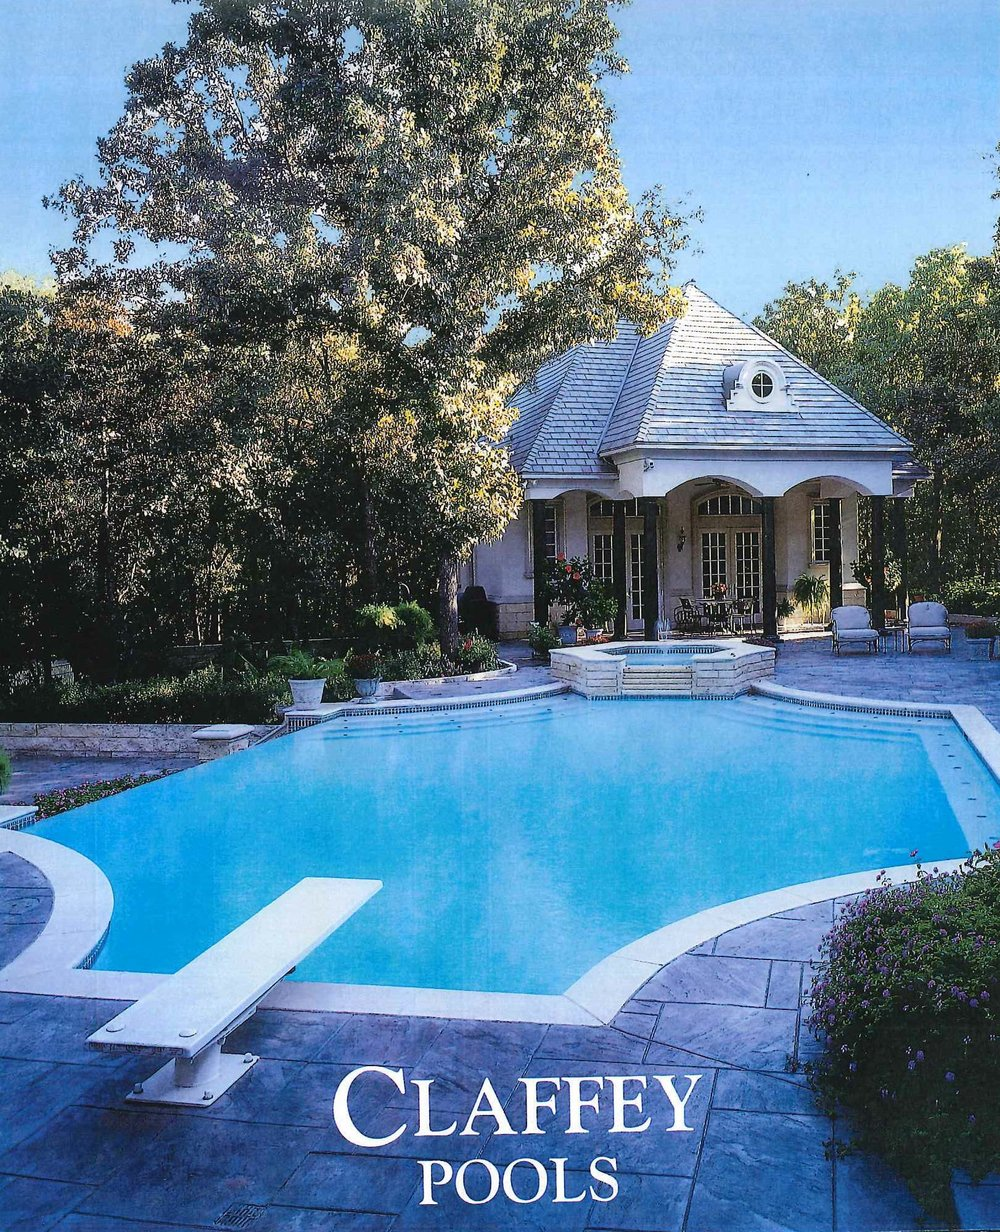 1995 - Claffey Pools moved to its first out-of-home location at 923 S. Church Street in Grapevine. Addition of even more non-family members.Claffey Pools constructed their 1,000th pool.